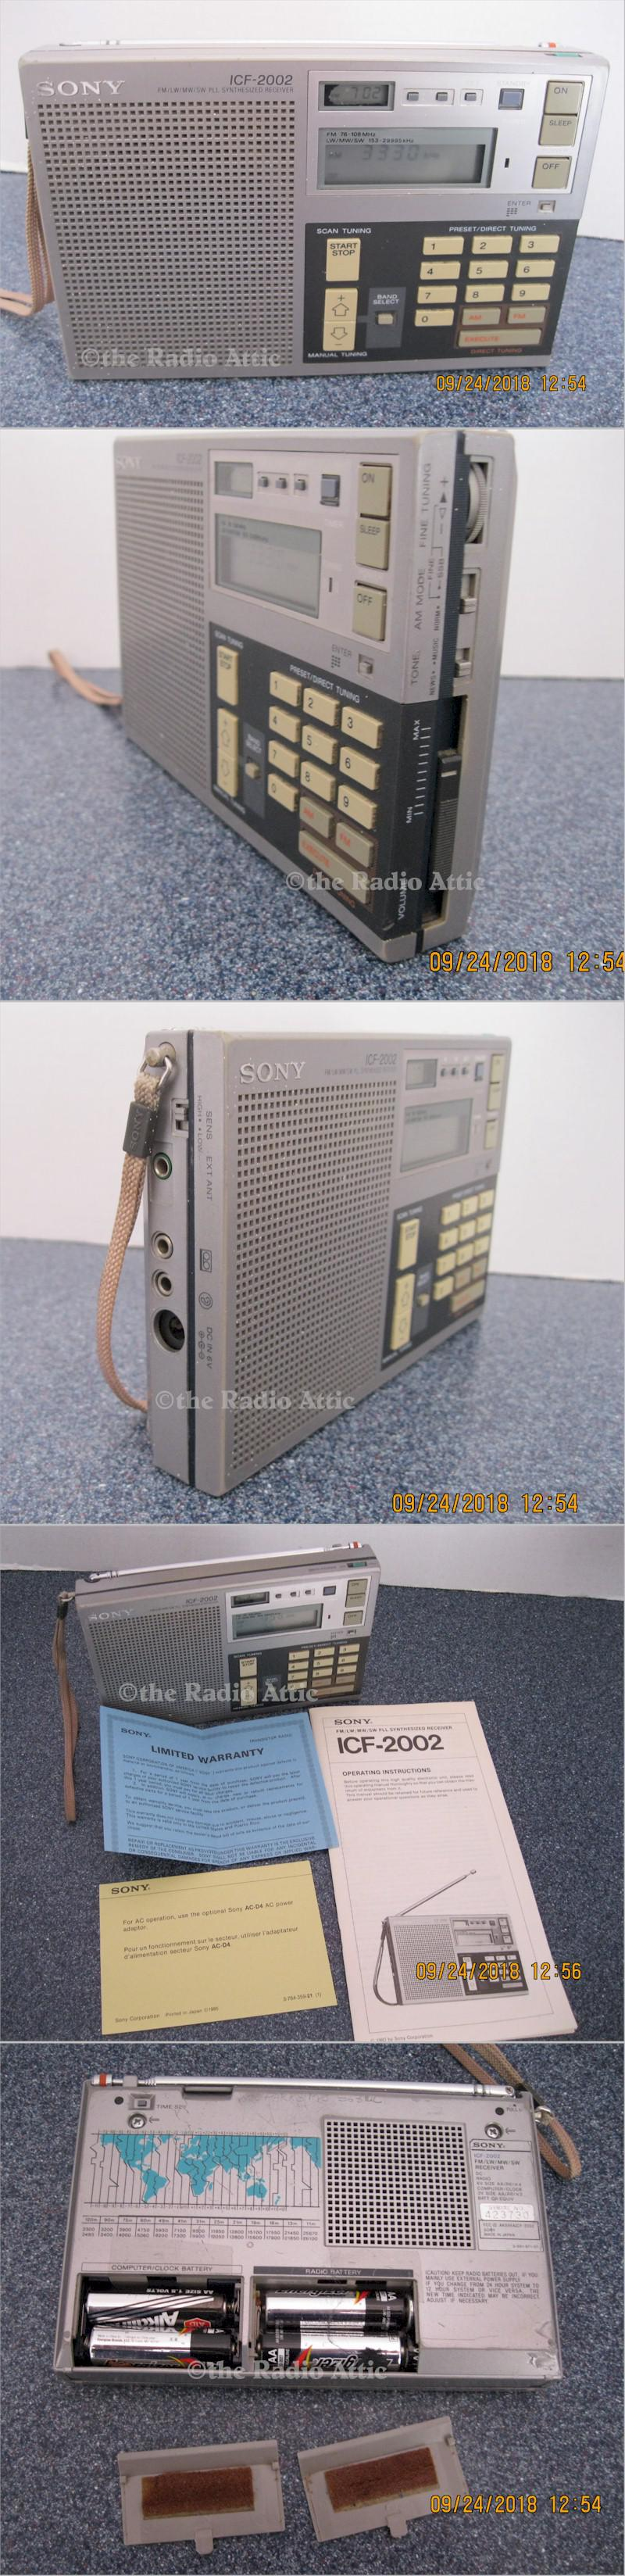 Sony ICF-2002 AM/FM/SW Portable